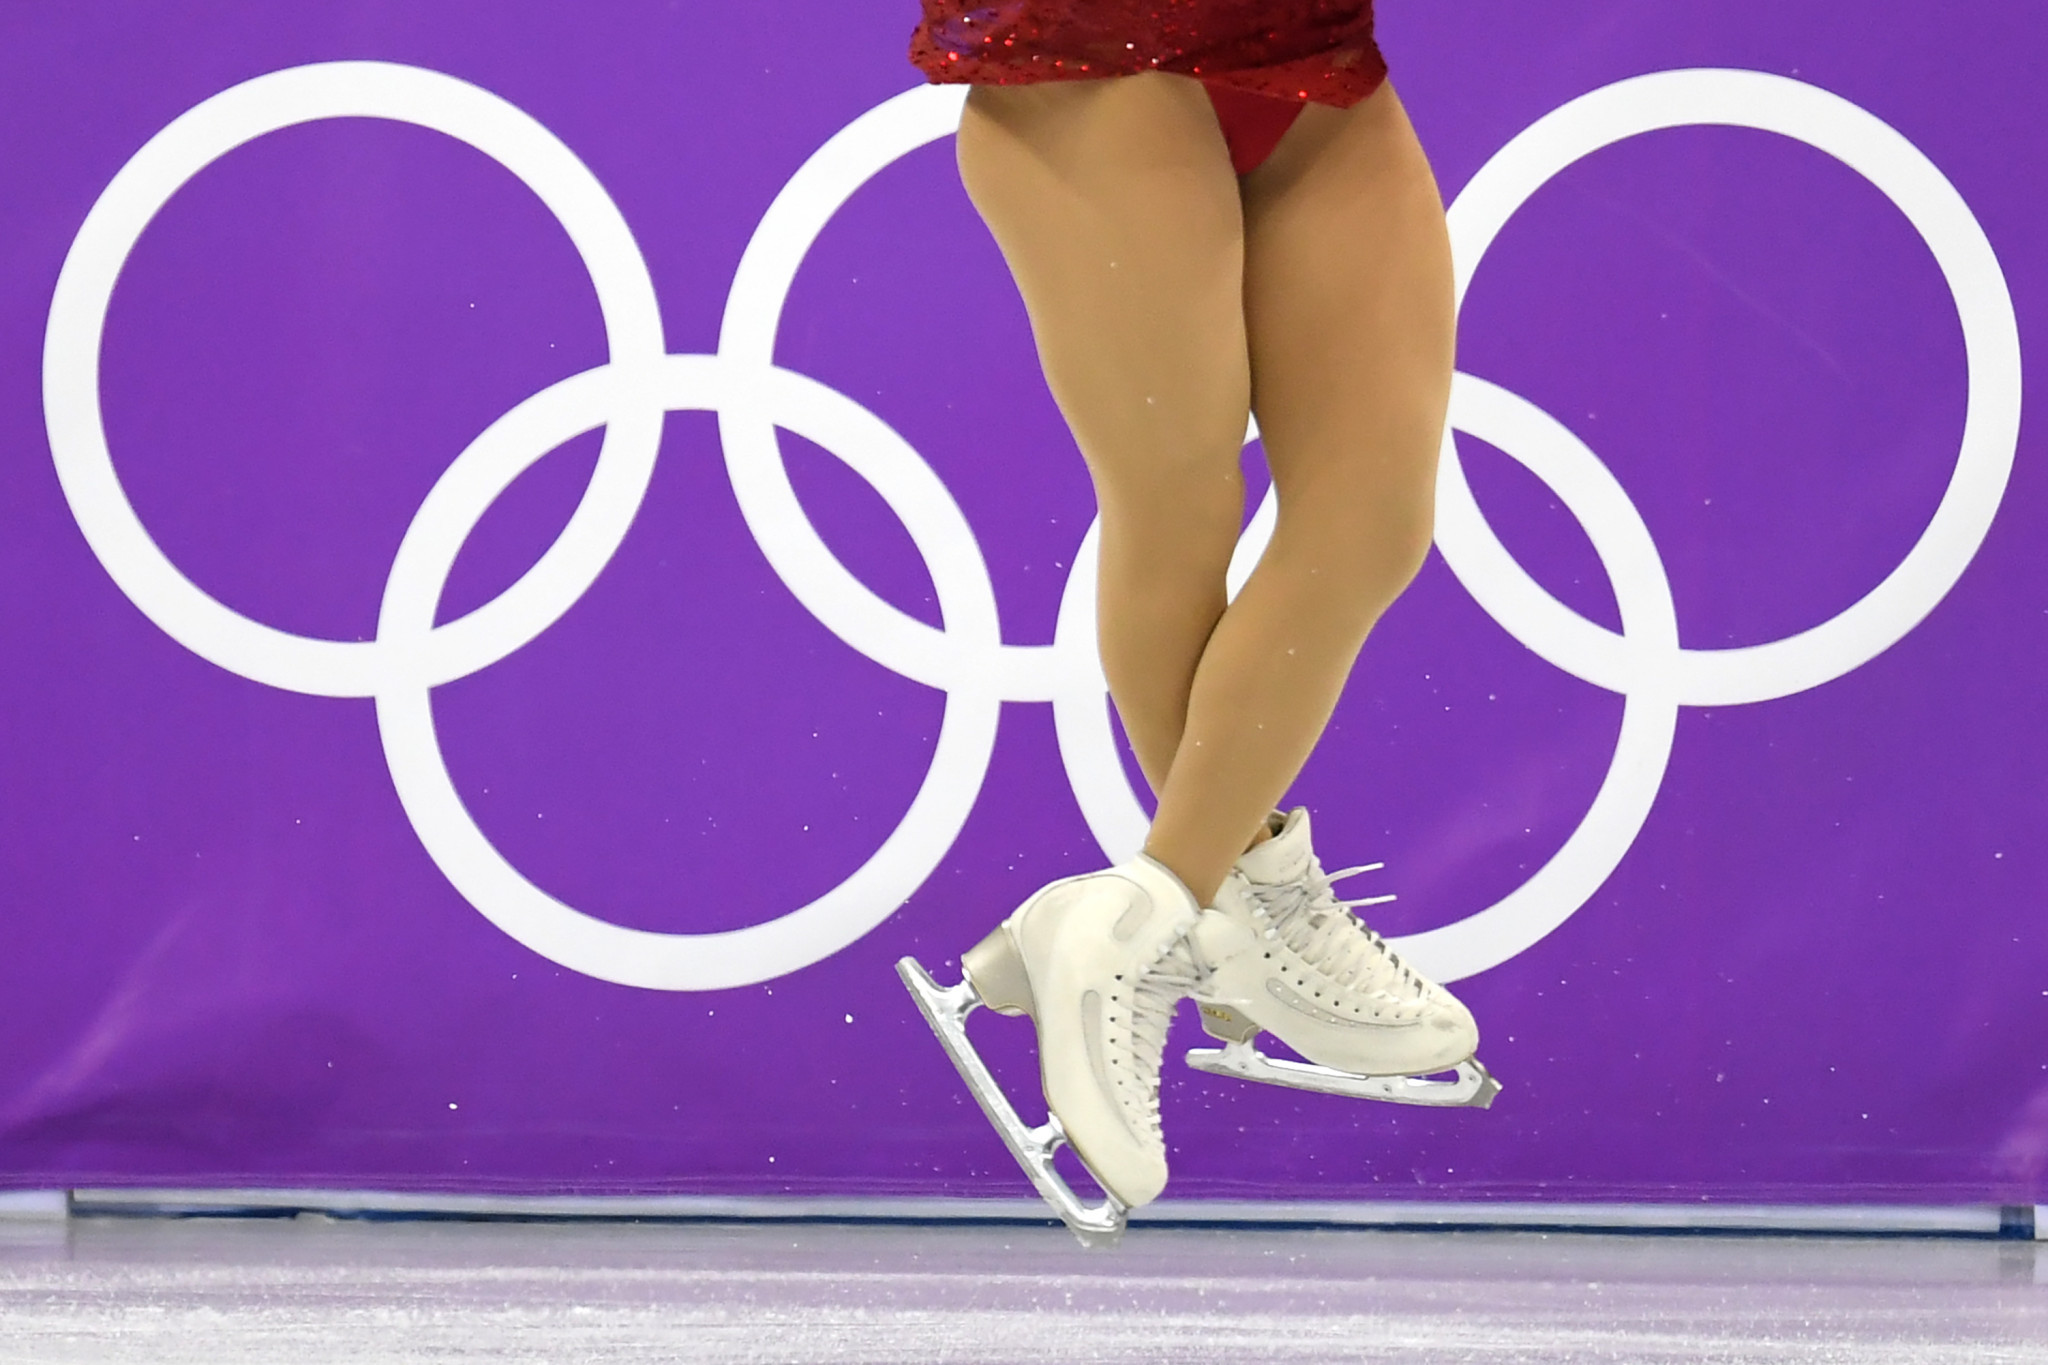 The ISU Technical Committee hope a limitation would help lead to more variety in routines ©Getty Images